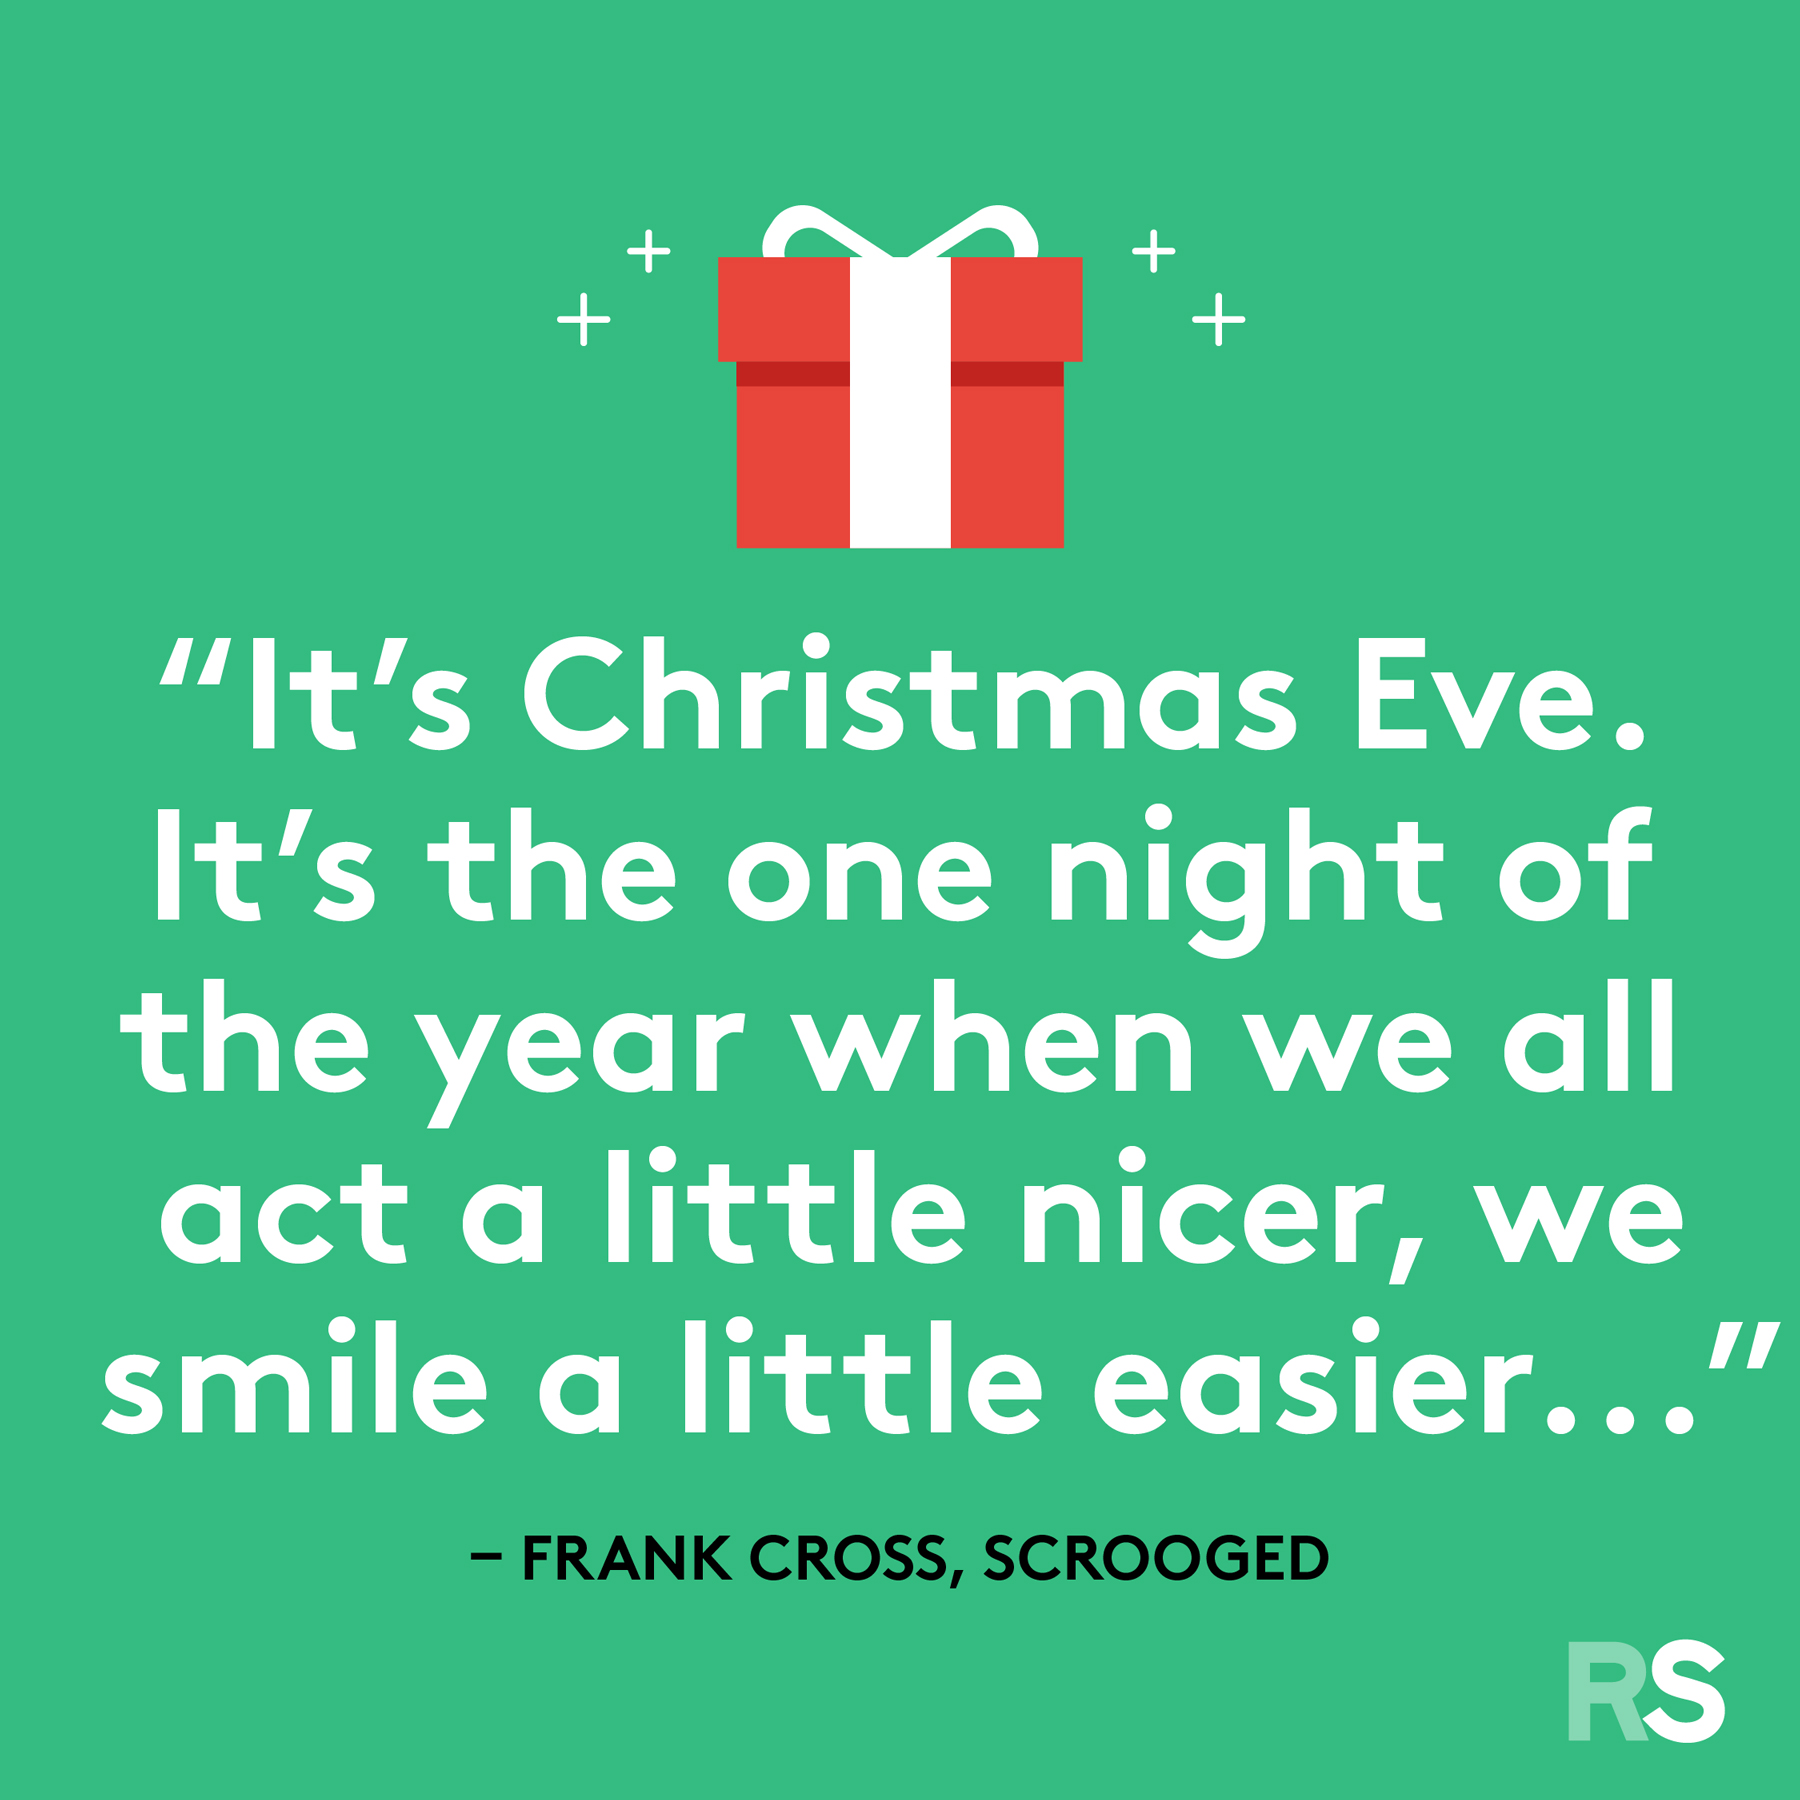 Best Christmas quotes - Frank Cross, Scrooged